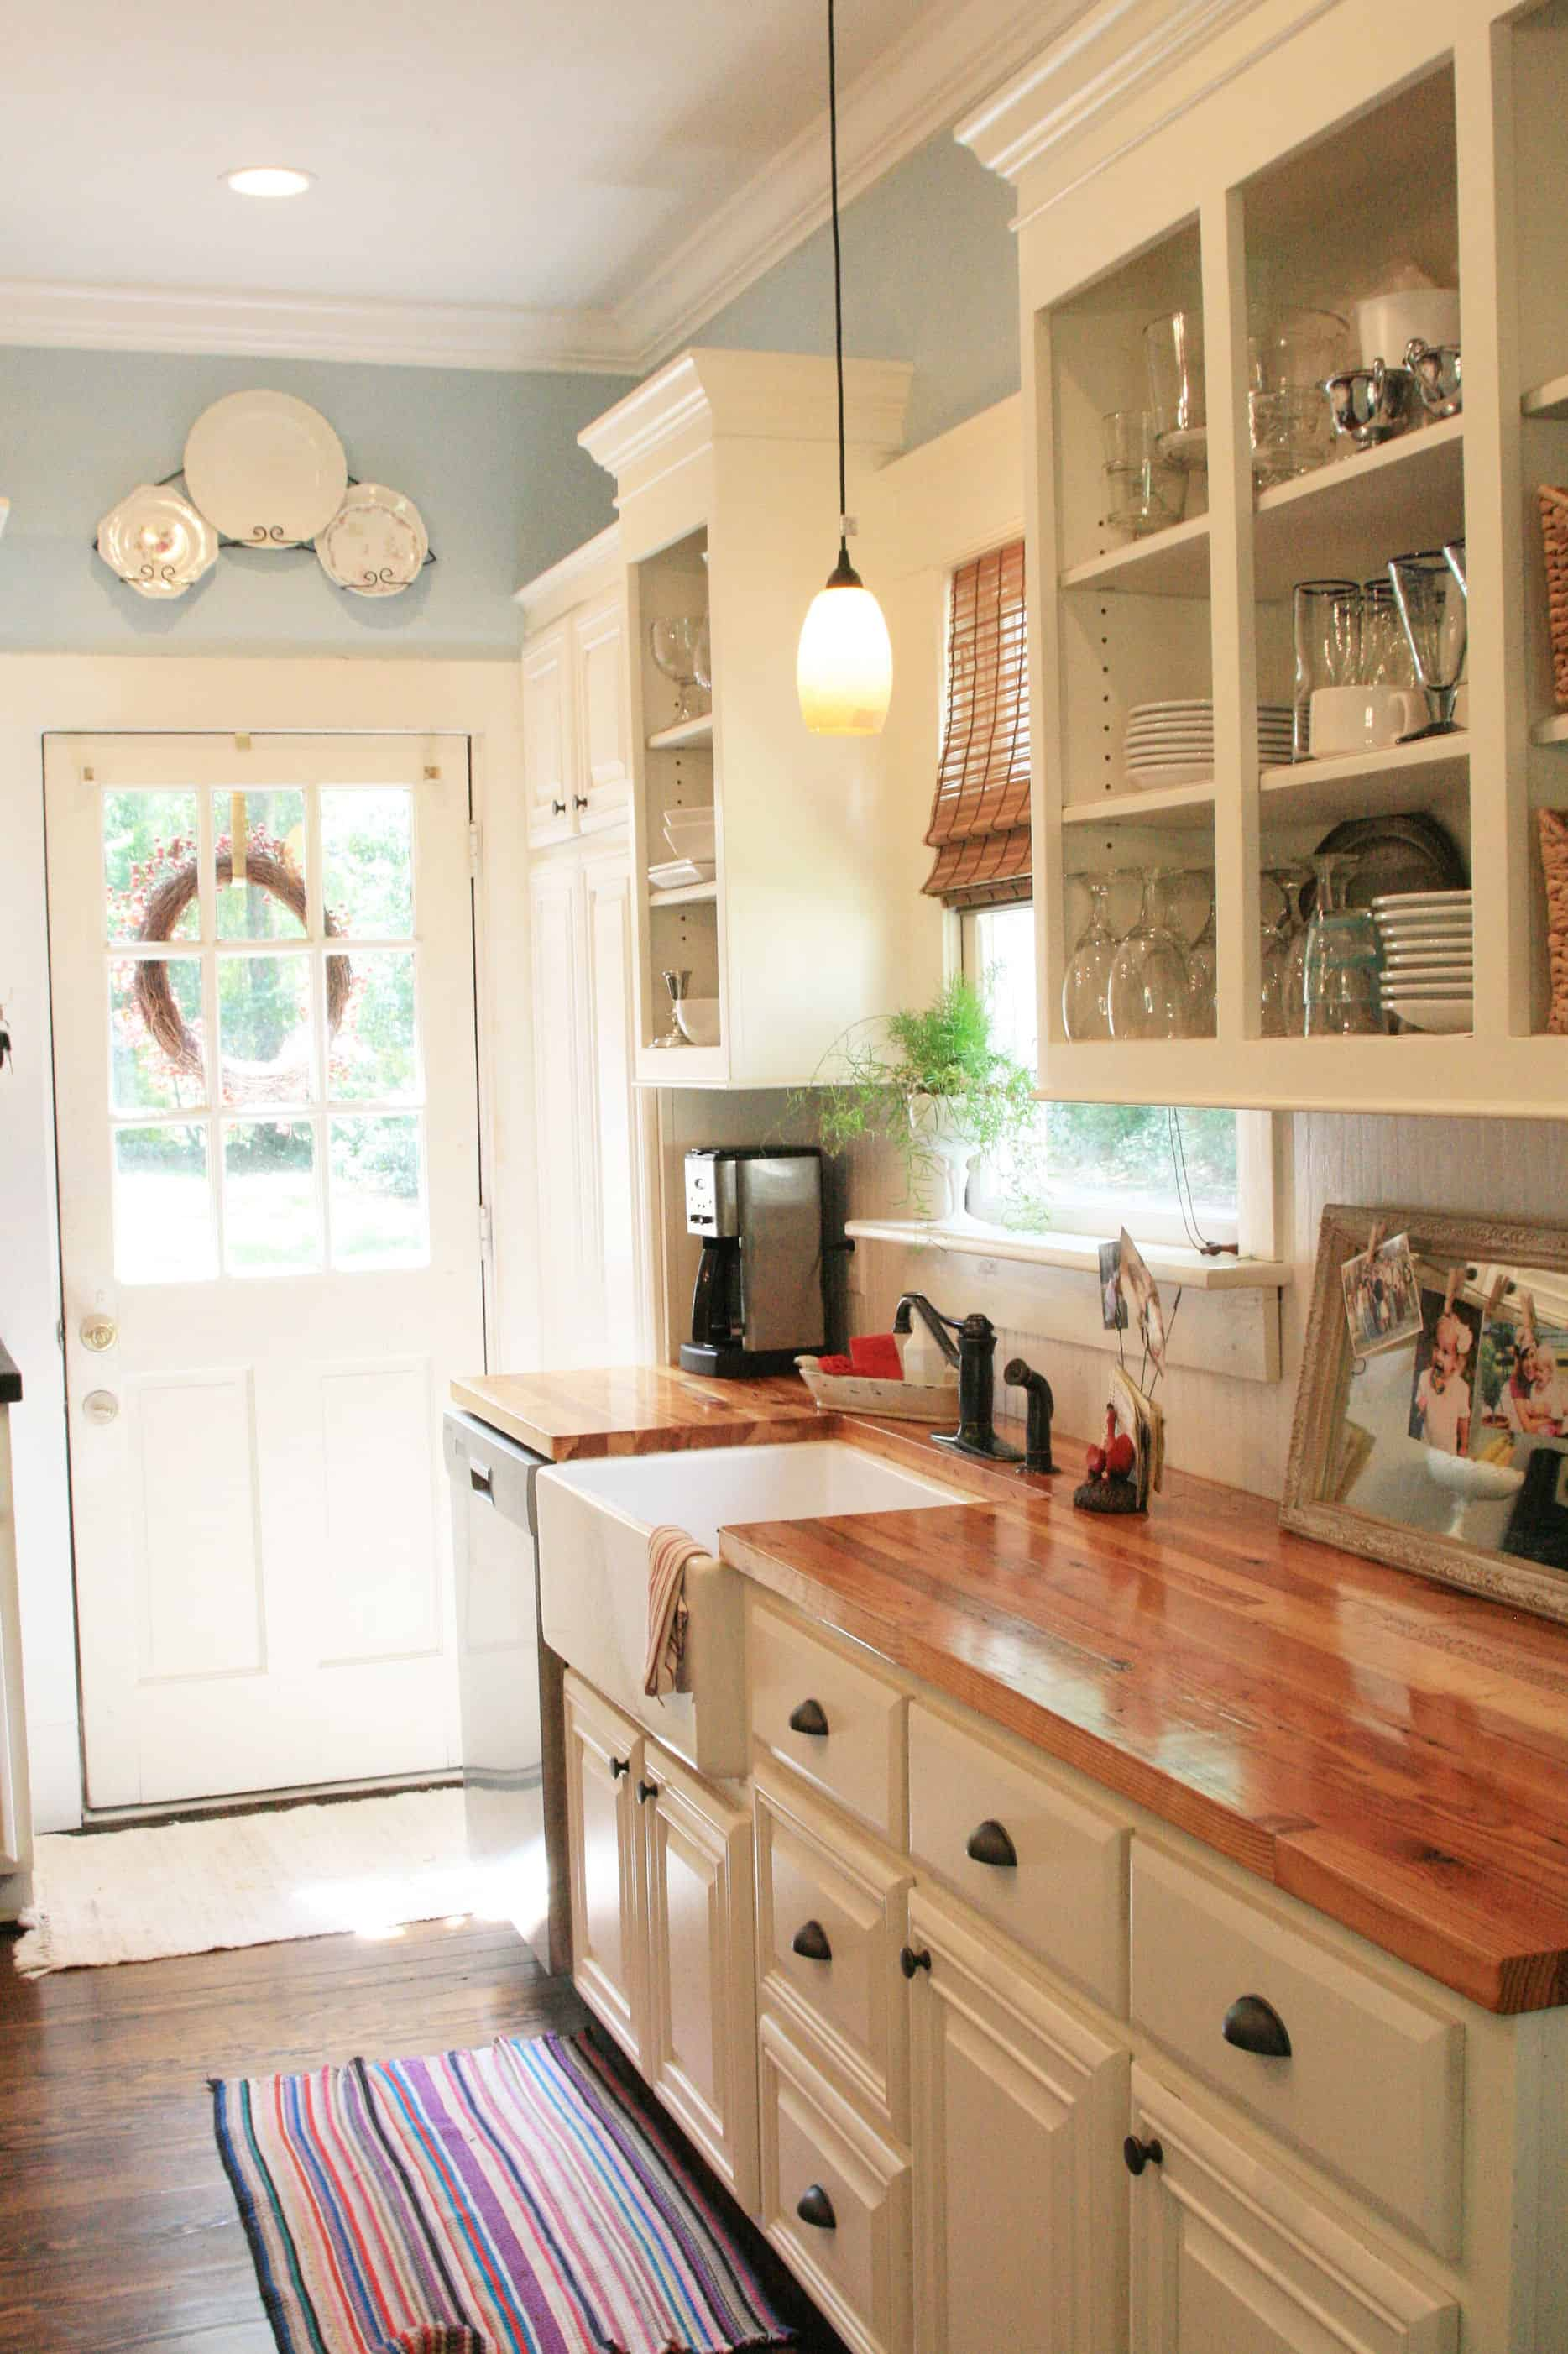 47 Splendid Rustic Countertop Ideas For Your Kitchen ... on country kitchen white ideas, country kitchen wall ideas, country kitchen island with cooktop, small kitchen dining room design ideas, country kitchen with shelves, small cabin kitchen design ideas, granite countertops kitchen ideas, dutch country kitchen ideas, country faucet ideas, country style kitchen ideas, country bathtub ideas, inexpensive kitchen countertops ideas, country kitchen paint ideas, country kitchen appliance ideas, country kitchen garden ideas, country kitchen countertop decor, country bathroom ideas, country garage ideas, country granite kitchen, country kitchen ideas for small kitchens,